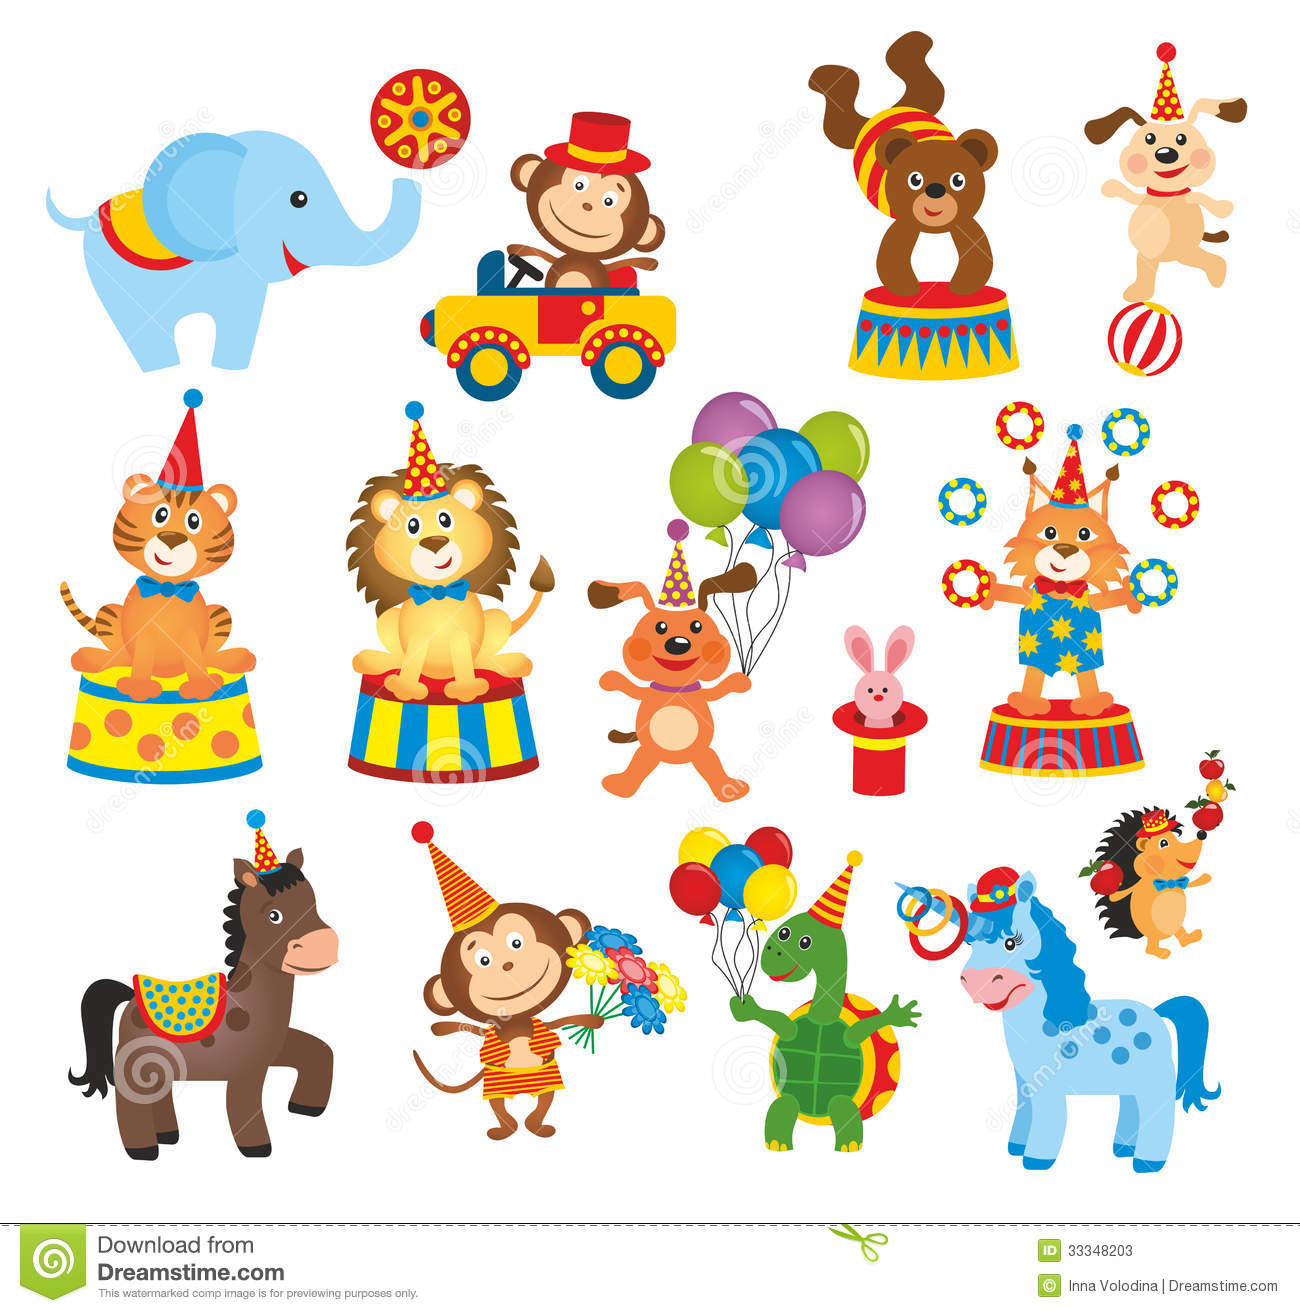 Circus animal clipart » Clipart Station.